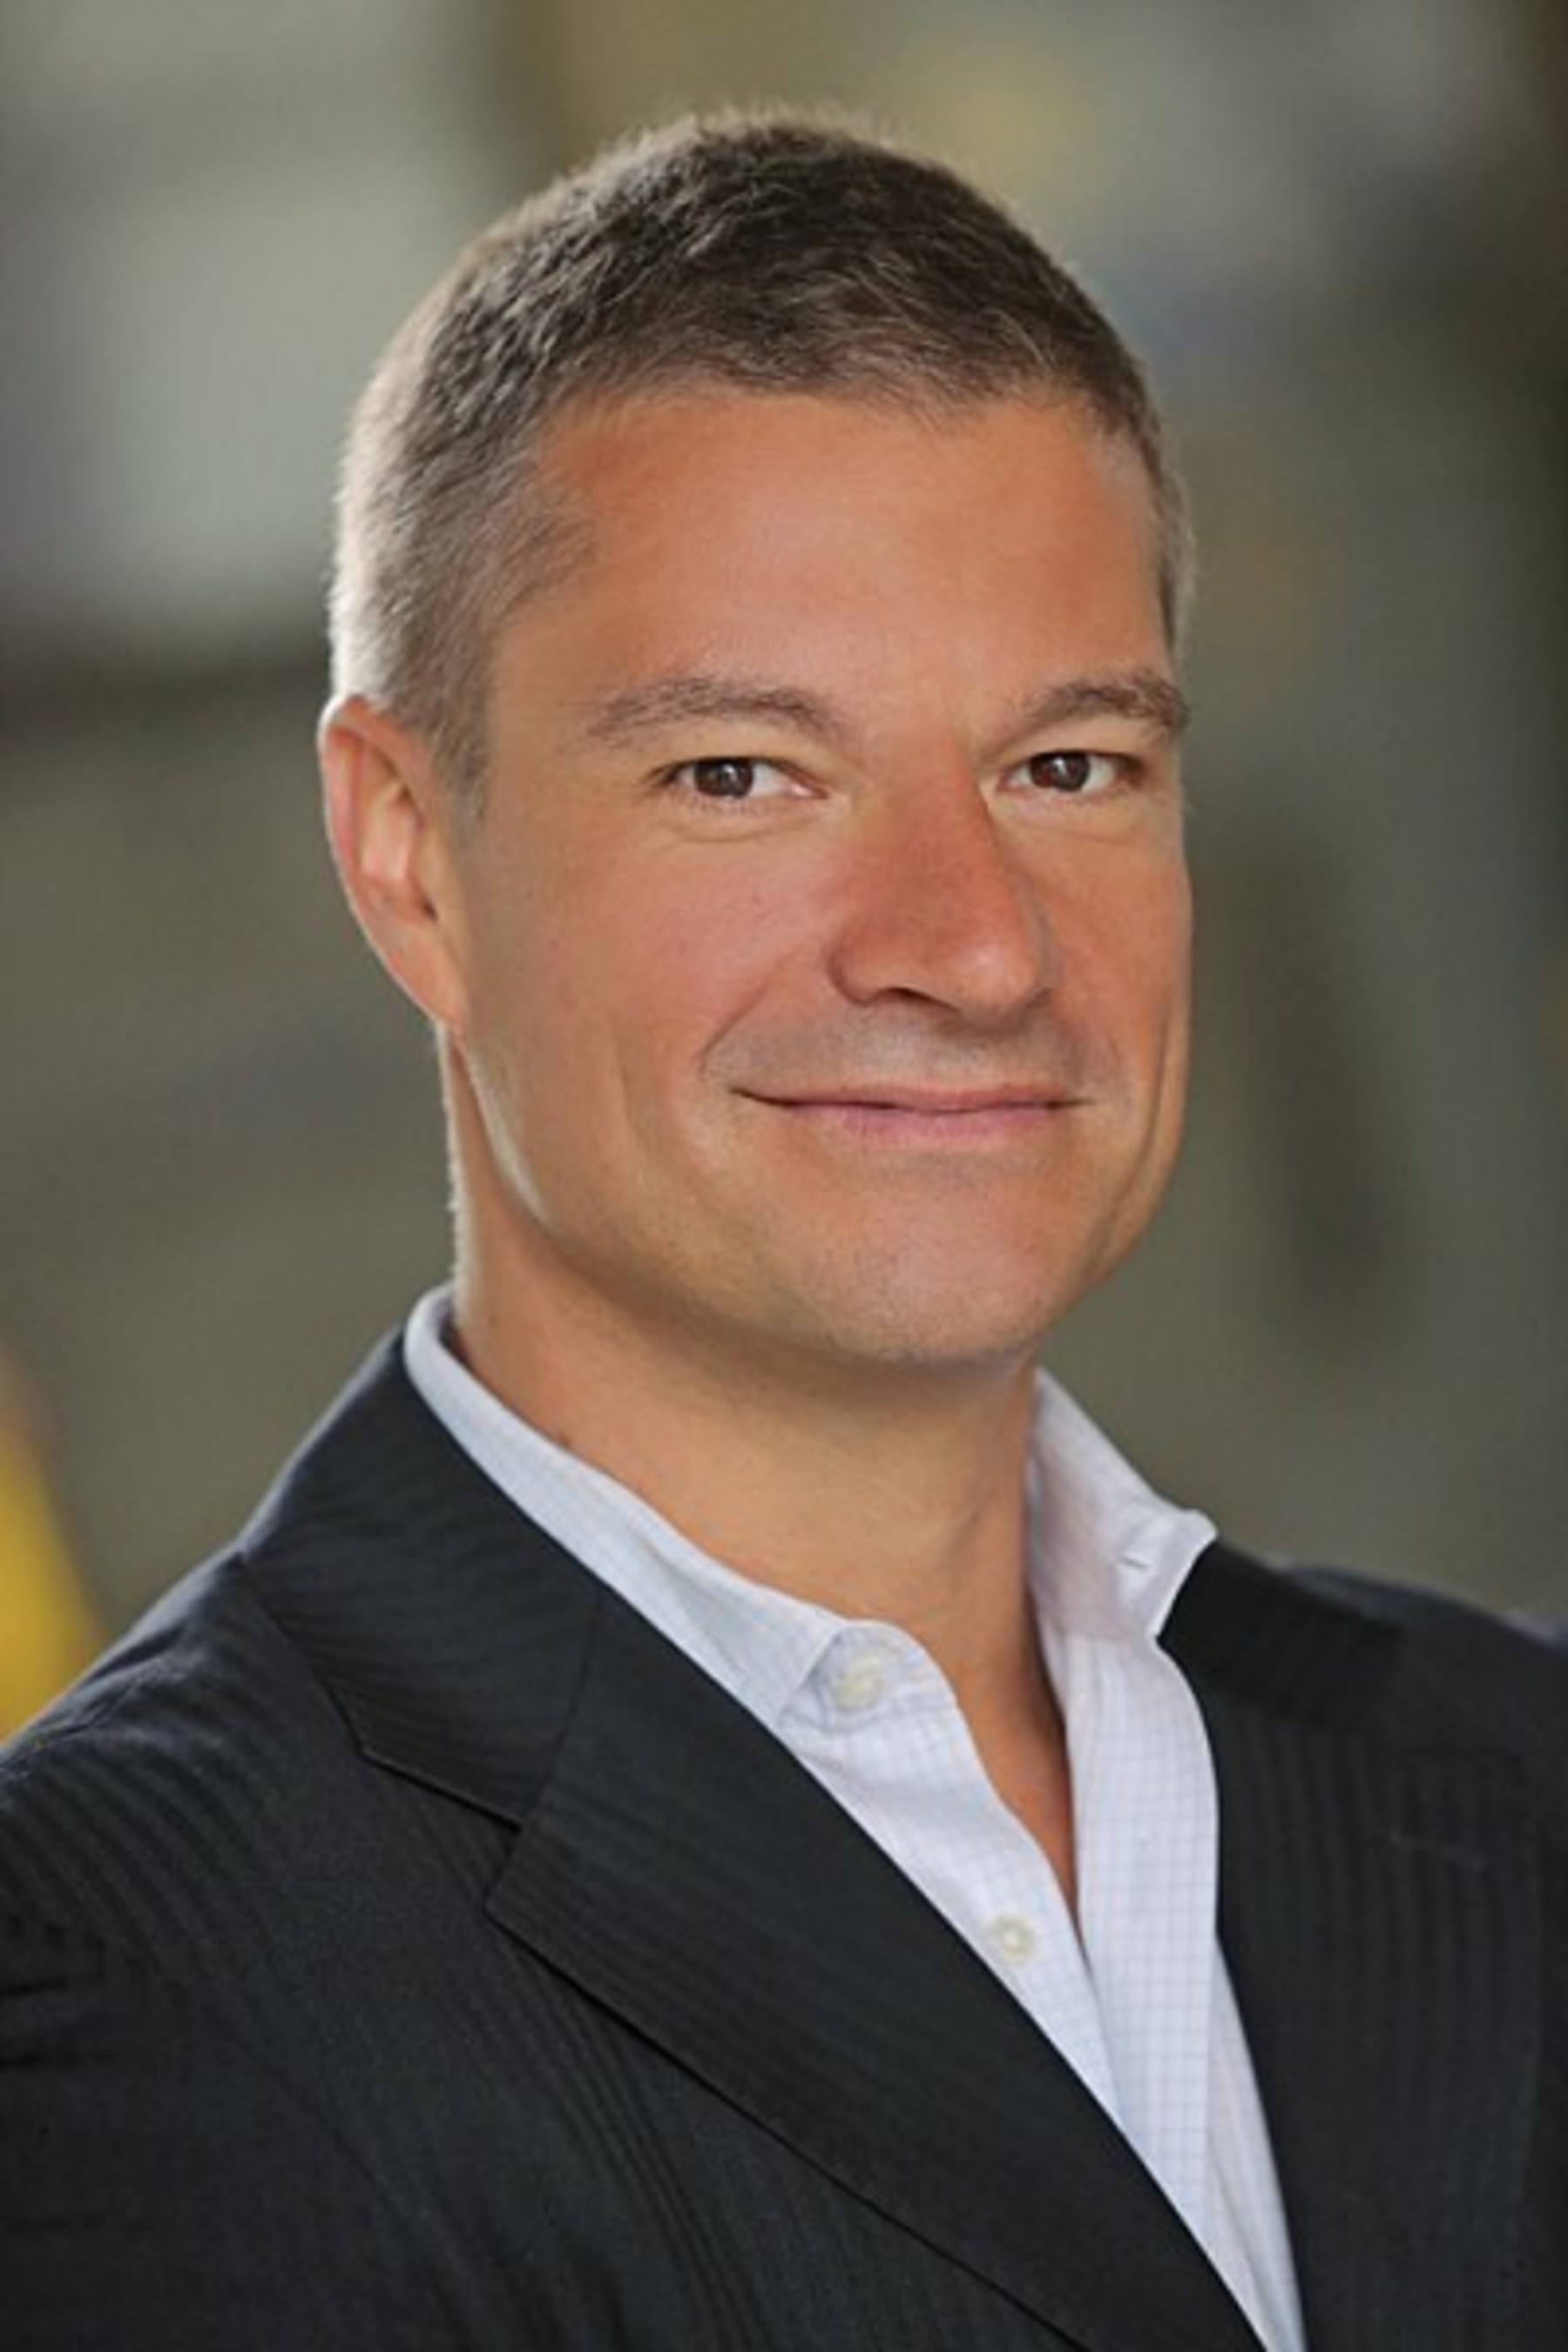 Former CEO of Mojiva, Bennett Theimann joins Tracx as CFO. Tracx is the leading social business management platform empowering enterprises and brands to create, manage, monetize and optimize social interactions throughout the consumer journey.